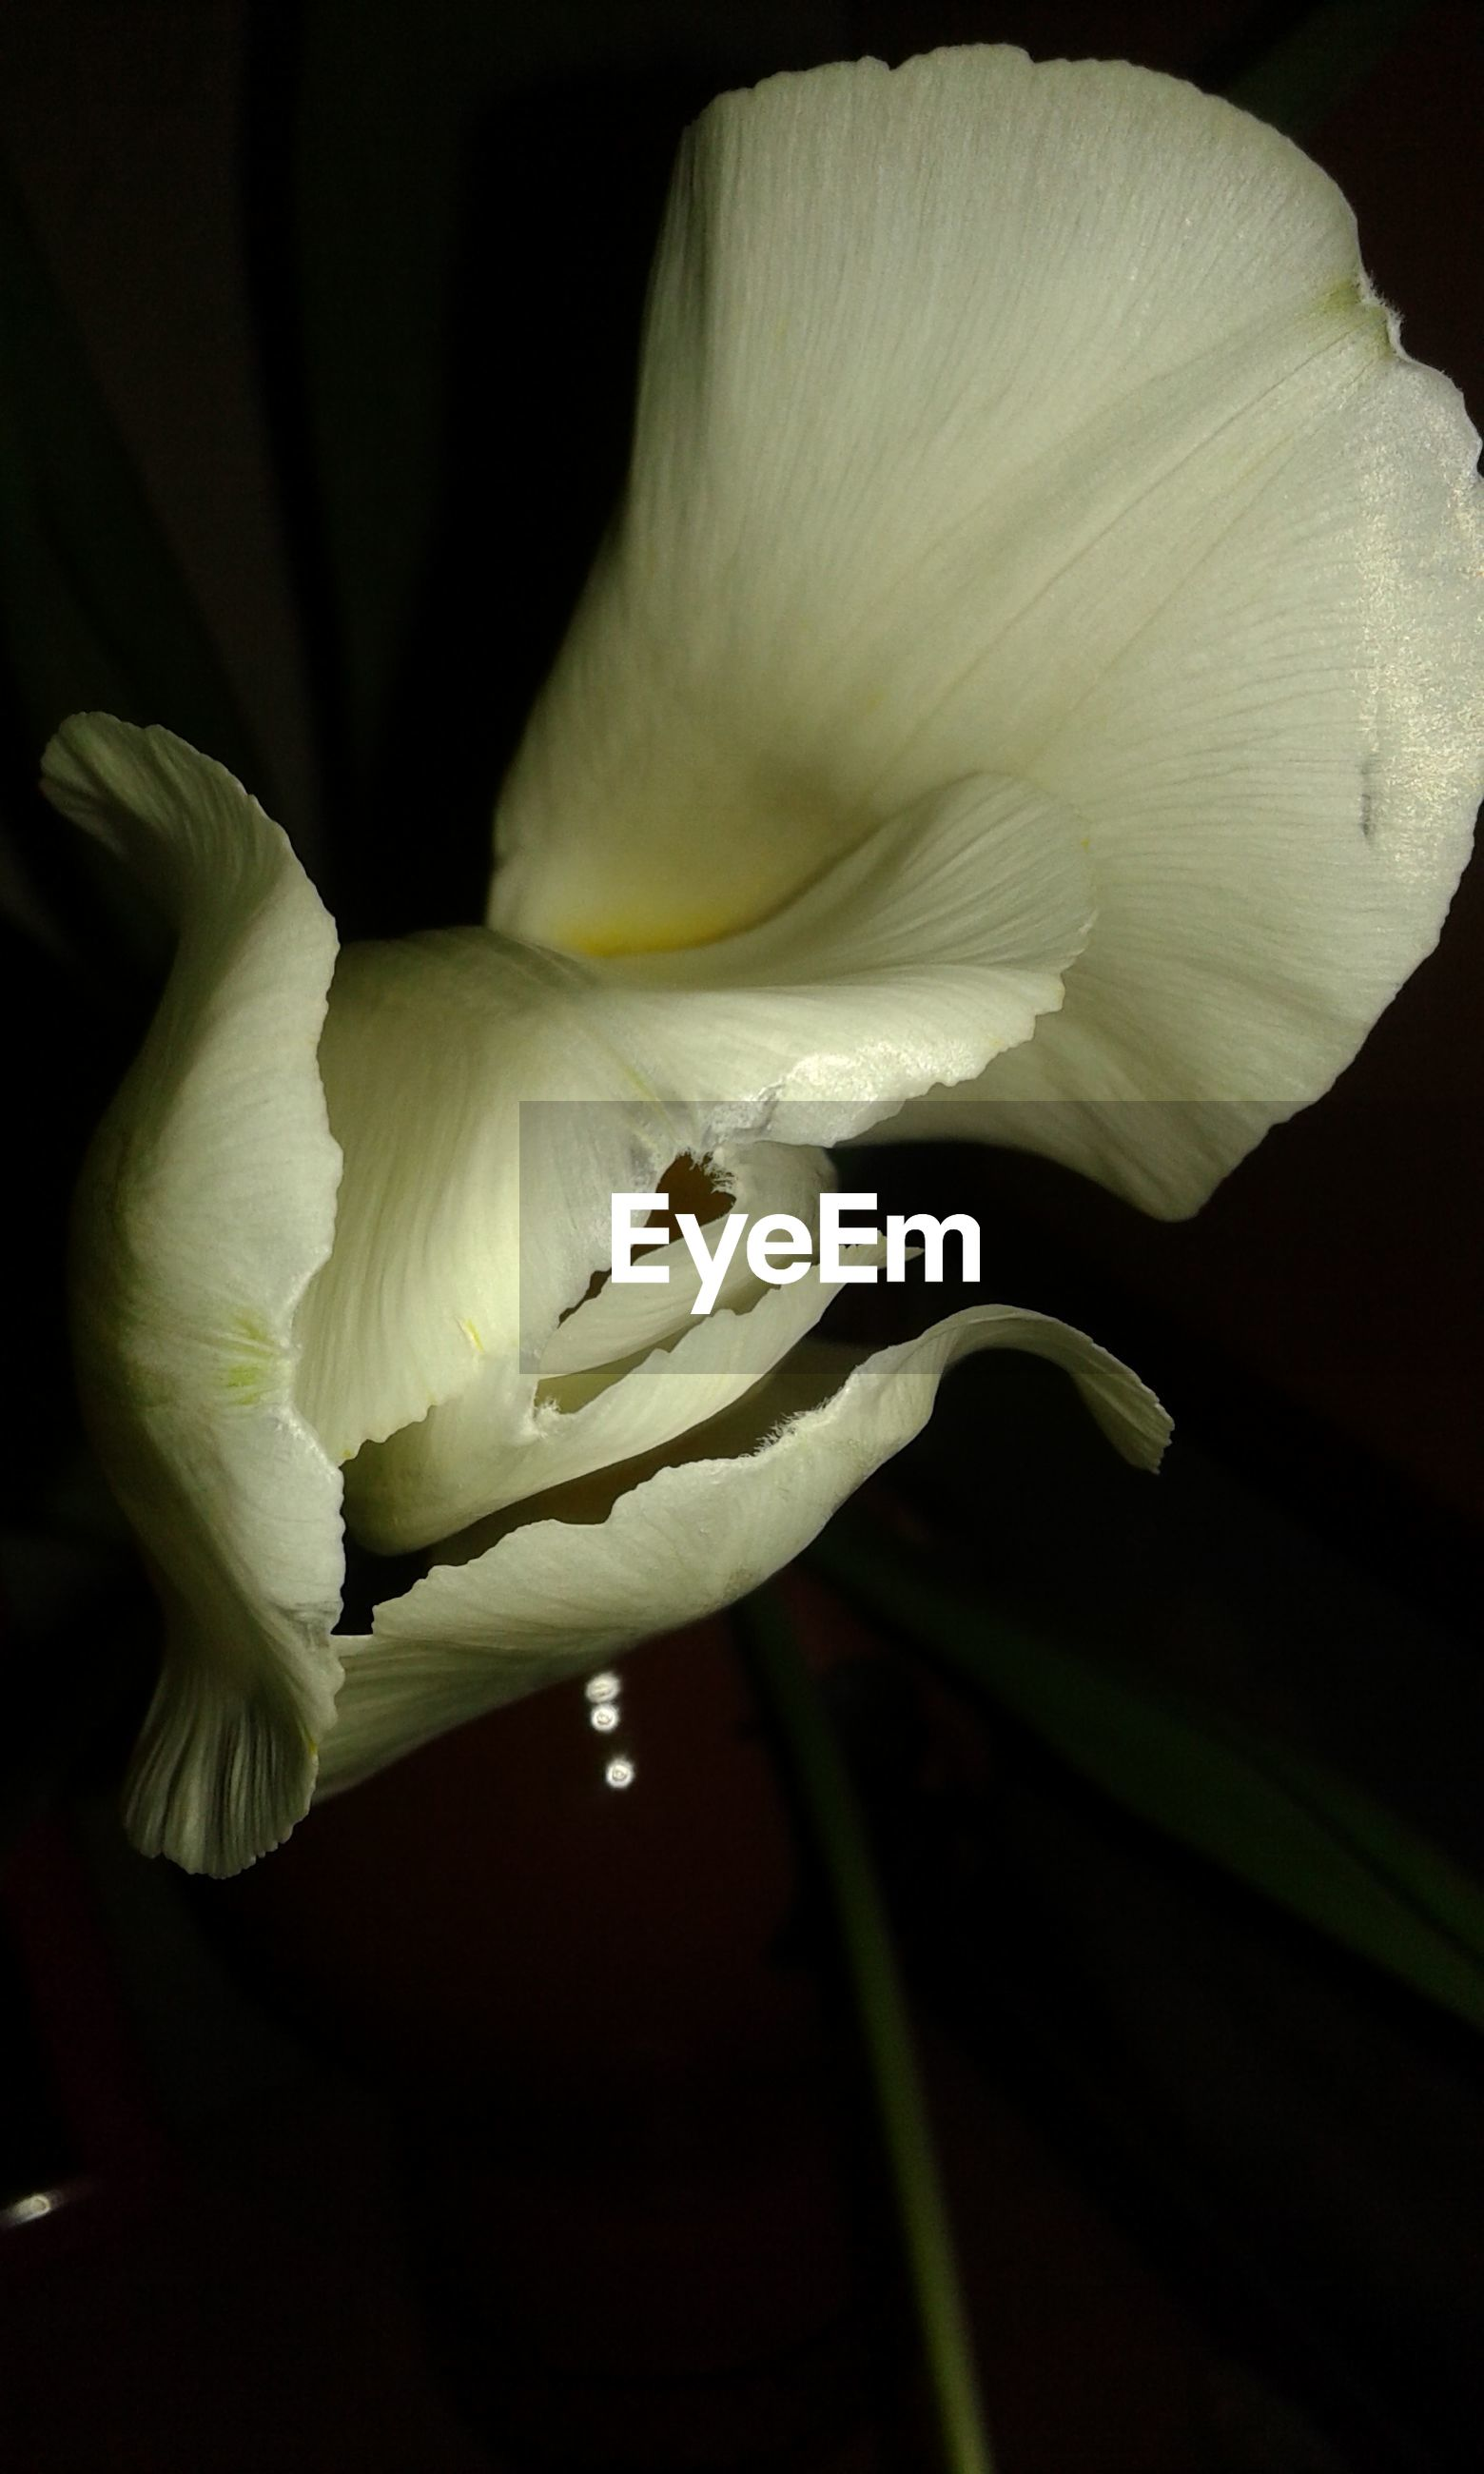 flower, beauty in nature, petal, freshness, fragility, growth, nature, flower head, close-up, blossom, plant, day lily, outdoors, no people, pistil, day